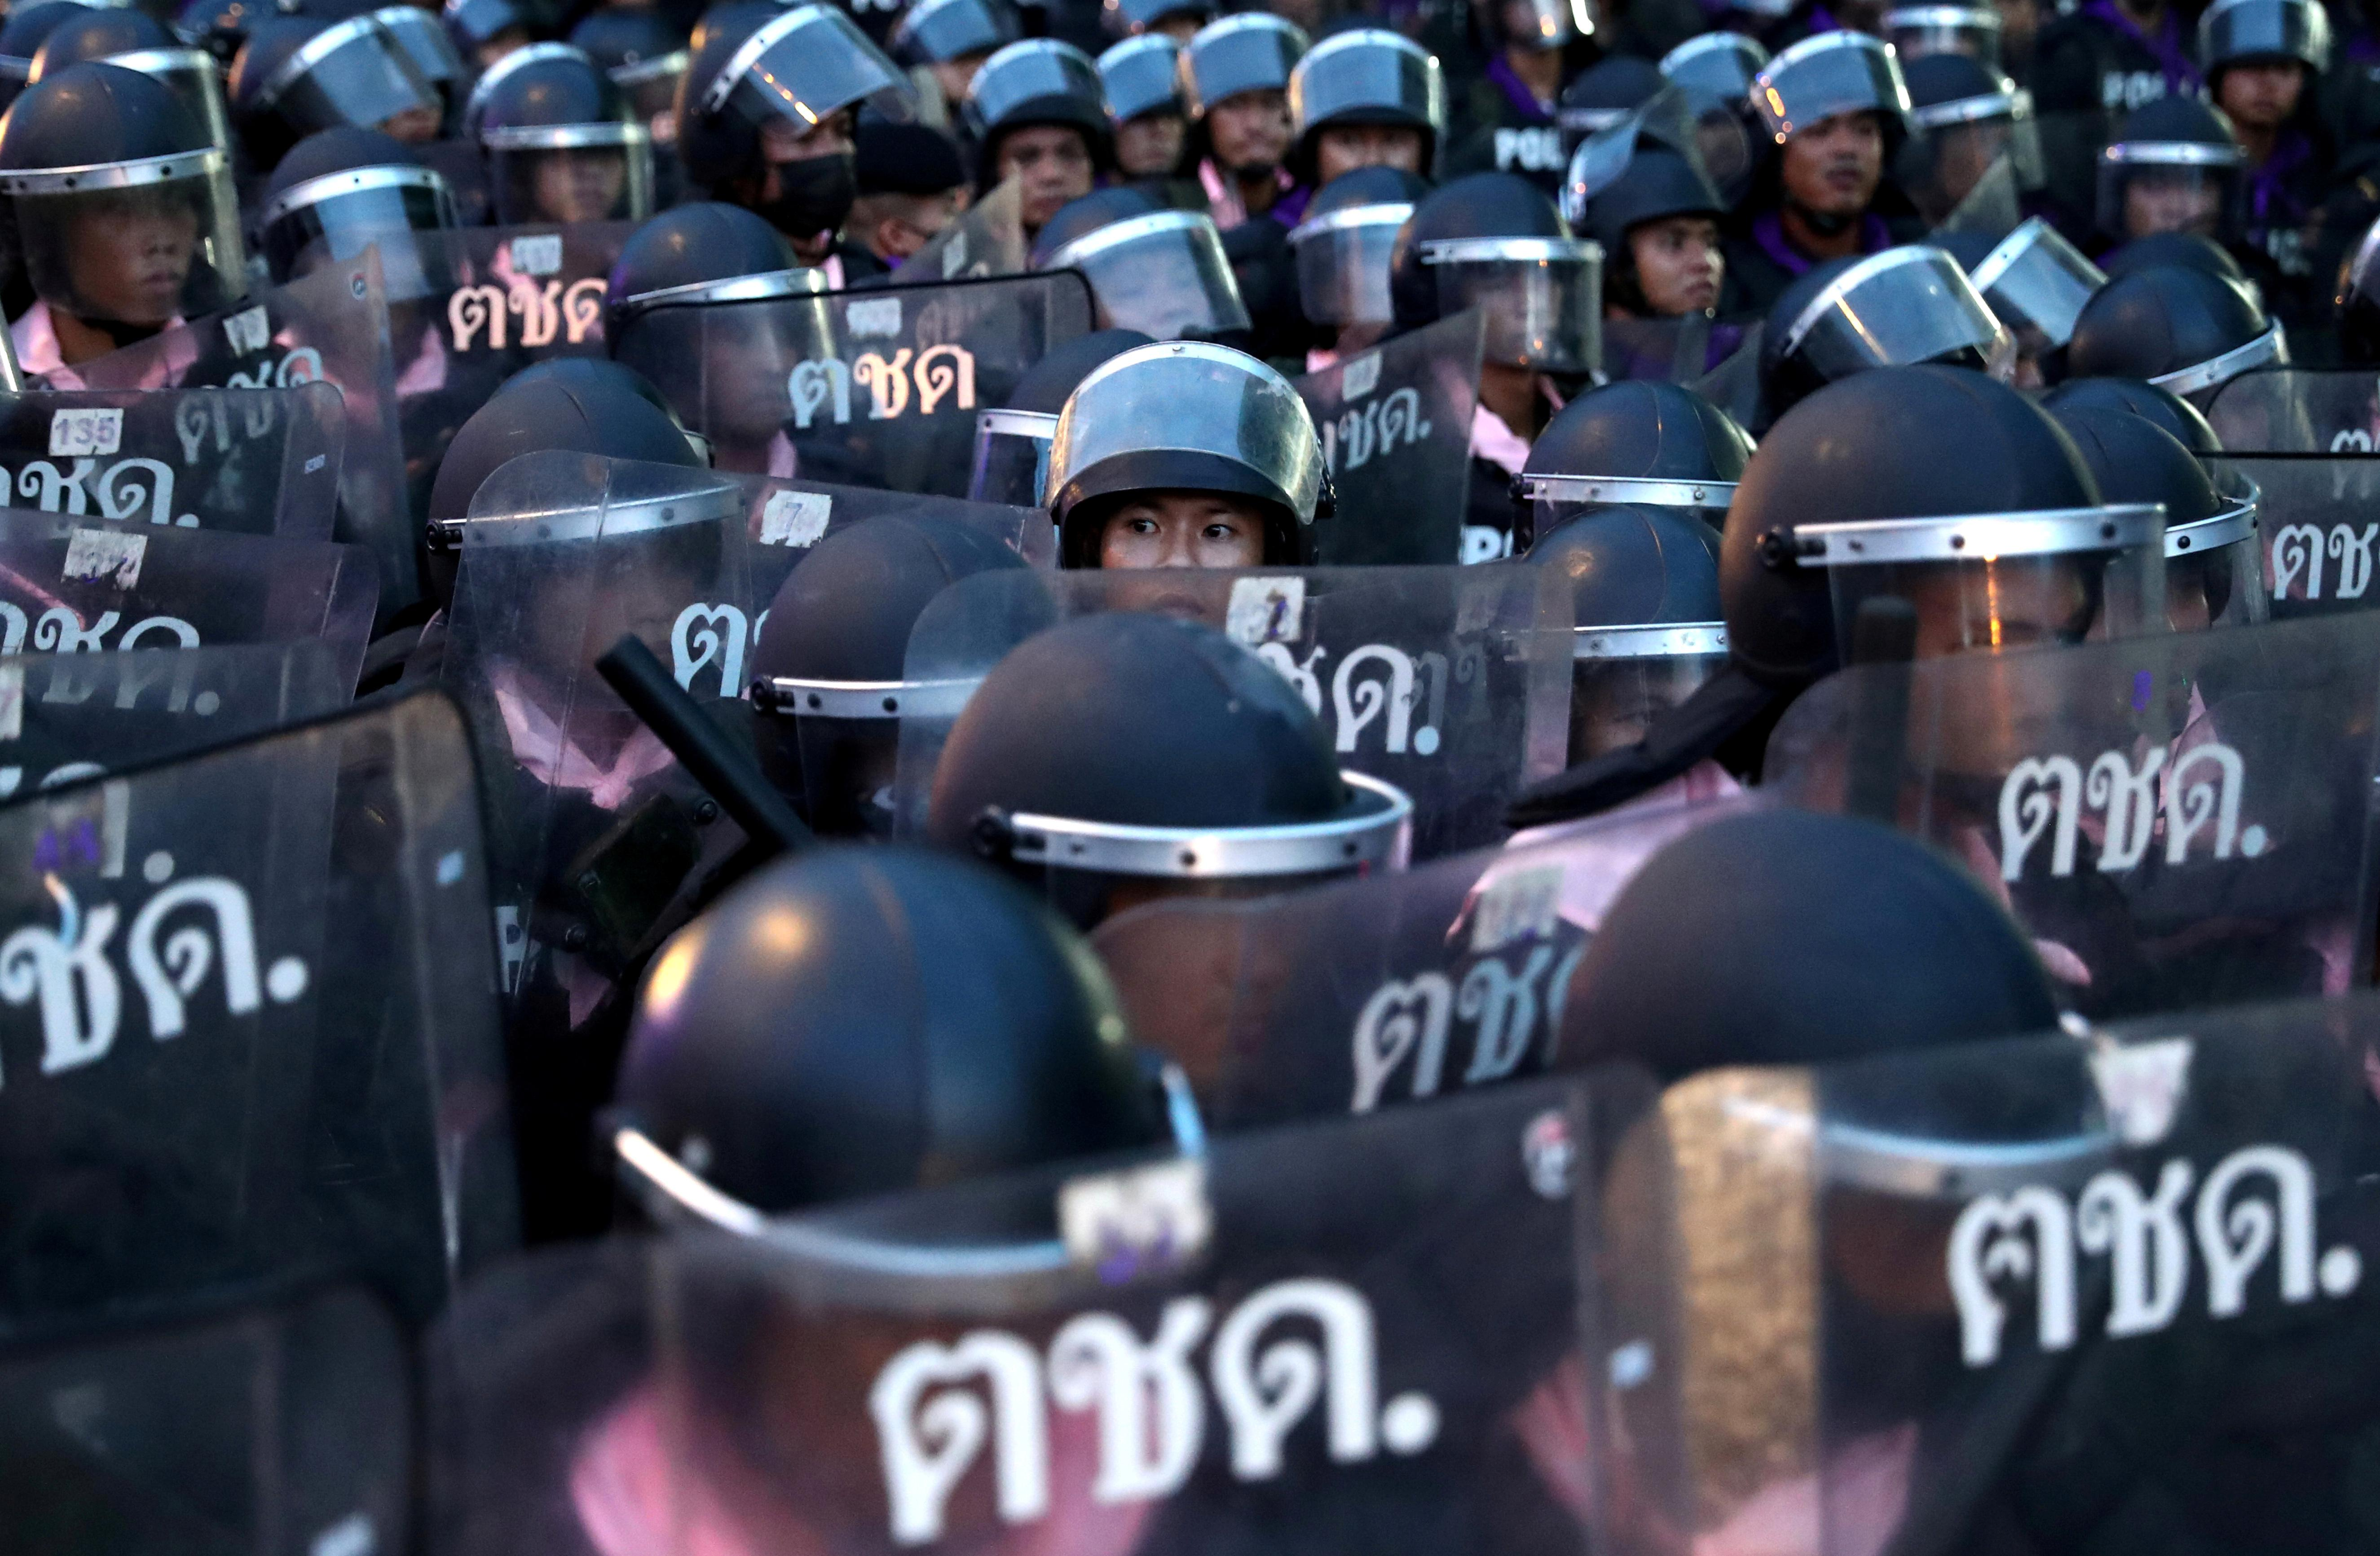 Thailand's ban on protests sparks more protests